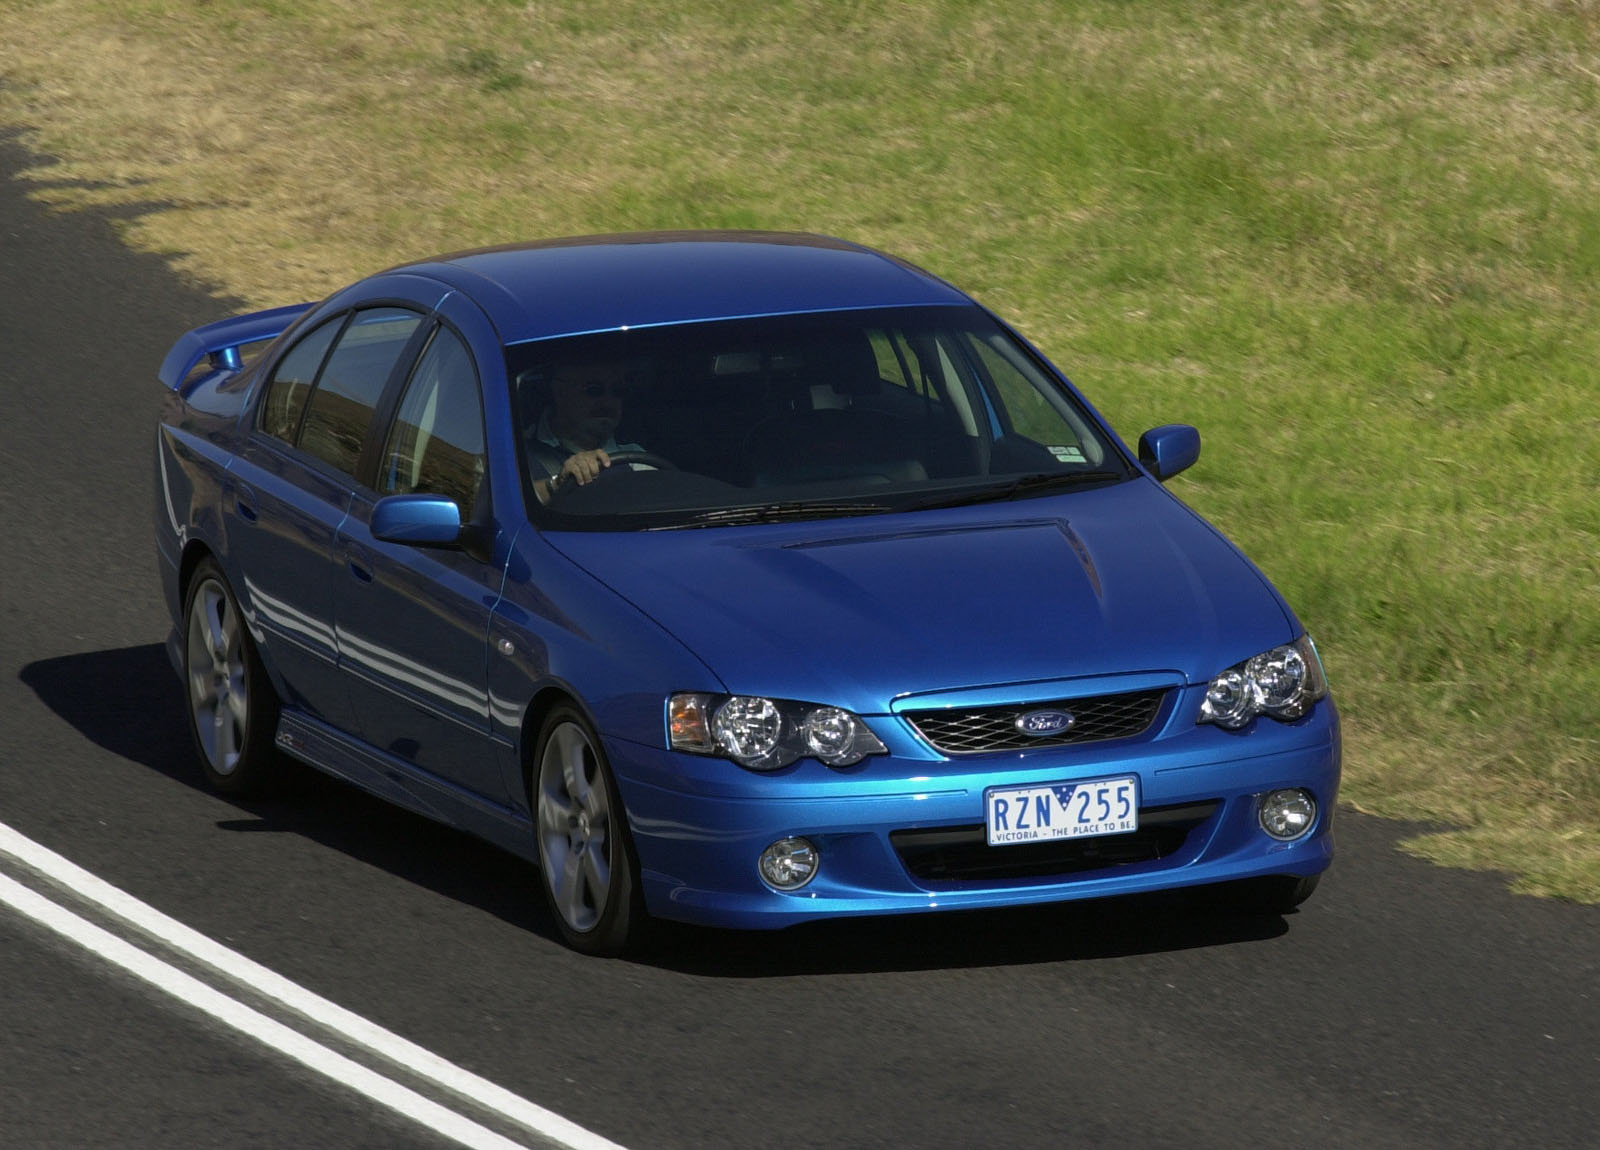 2002 Ford Ba Falcon Xr8 Hd Pictures Thumbnail Photo 91403